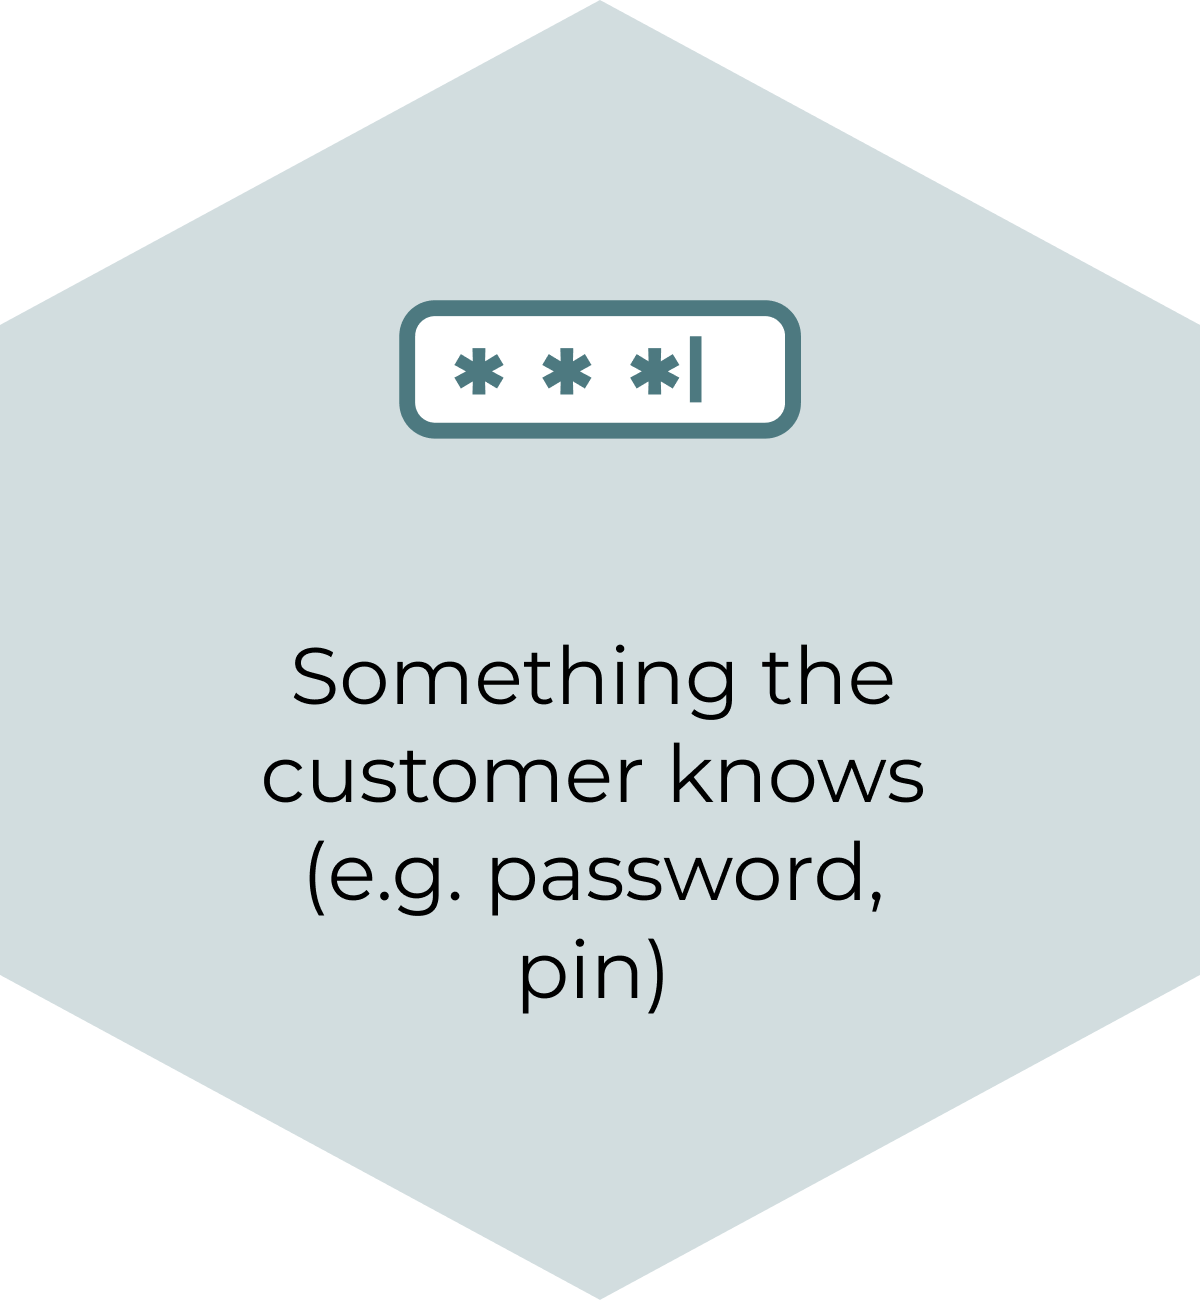 Something the customer knows (e.g. password, pin)